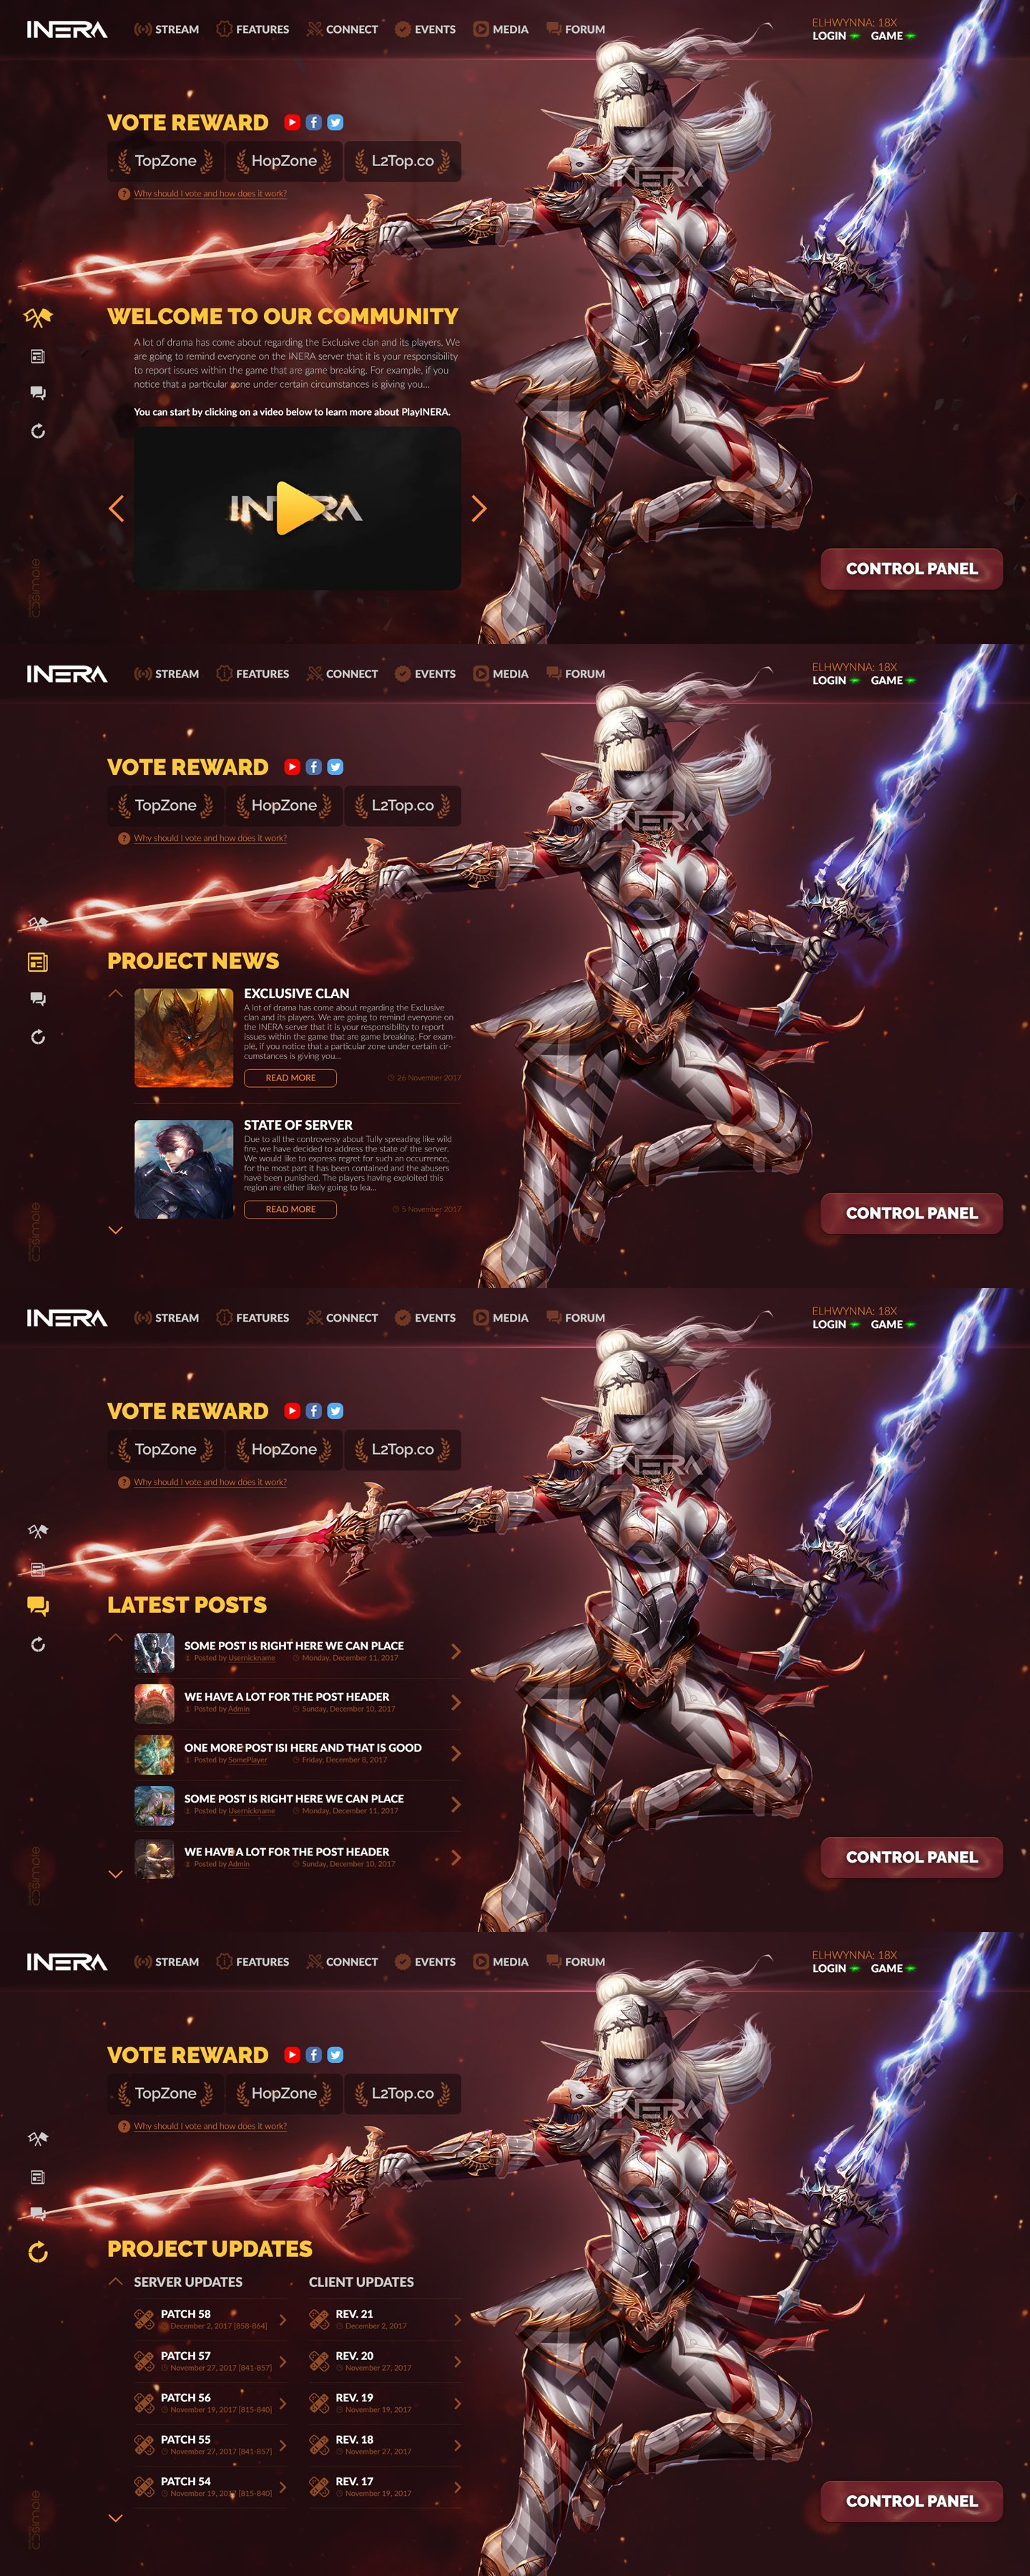 PlayInera > Website design for Lineage 2 private server